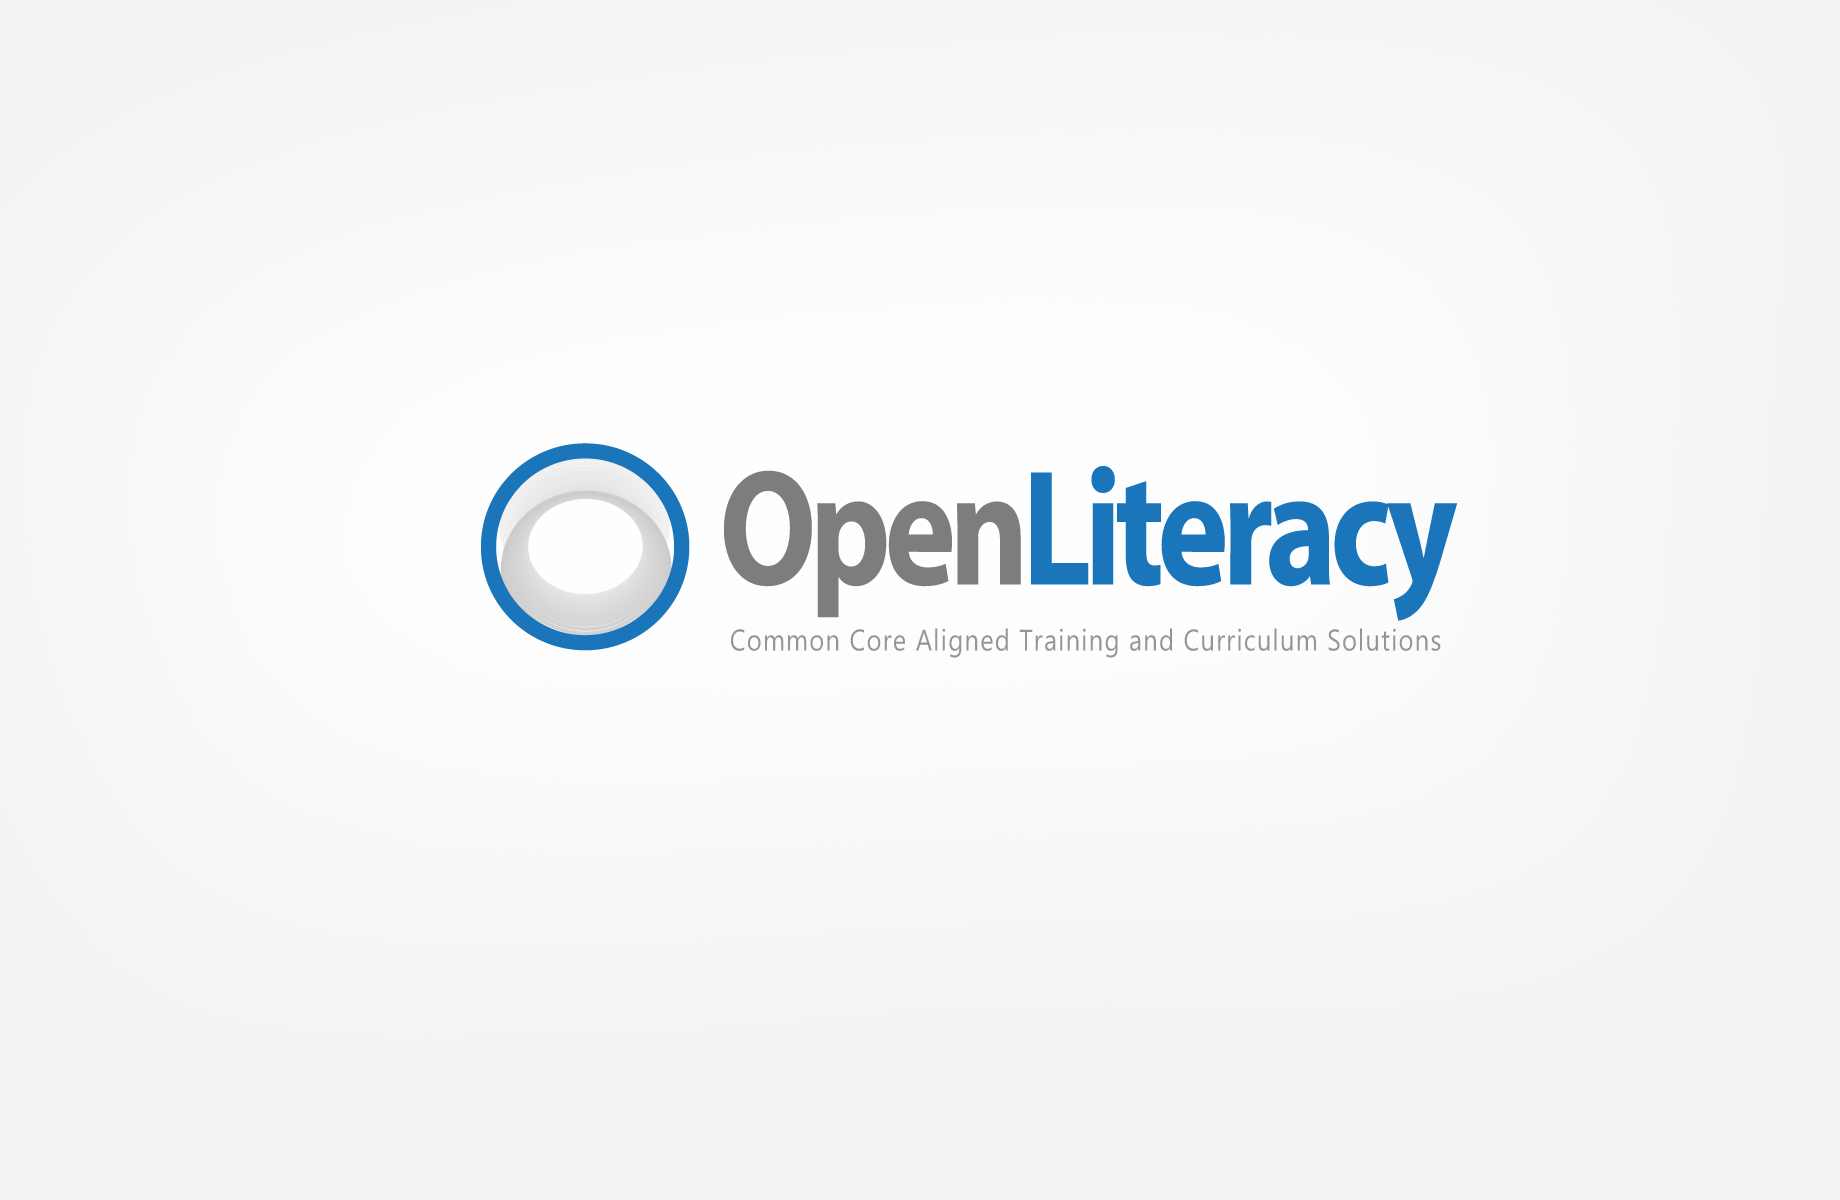 Logo Design by Jan Chua - Entry No. 65 in the Logo Design Contest Inspiring Logo Design for OpenLiteracy.